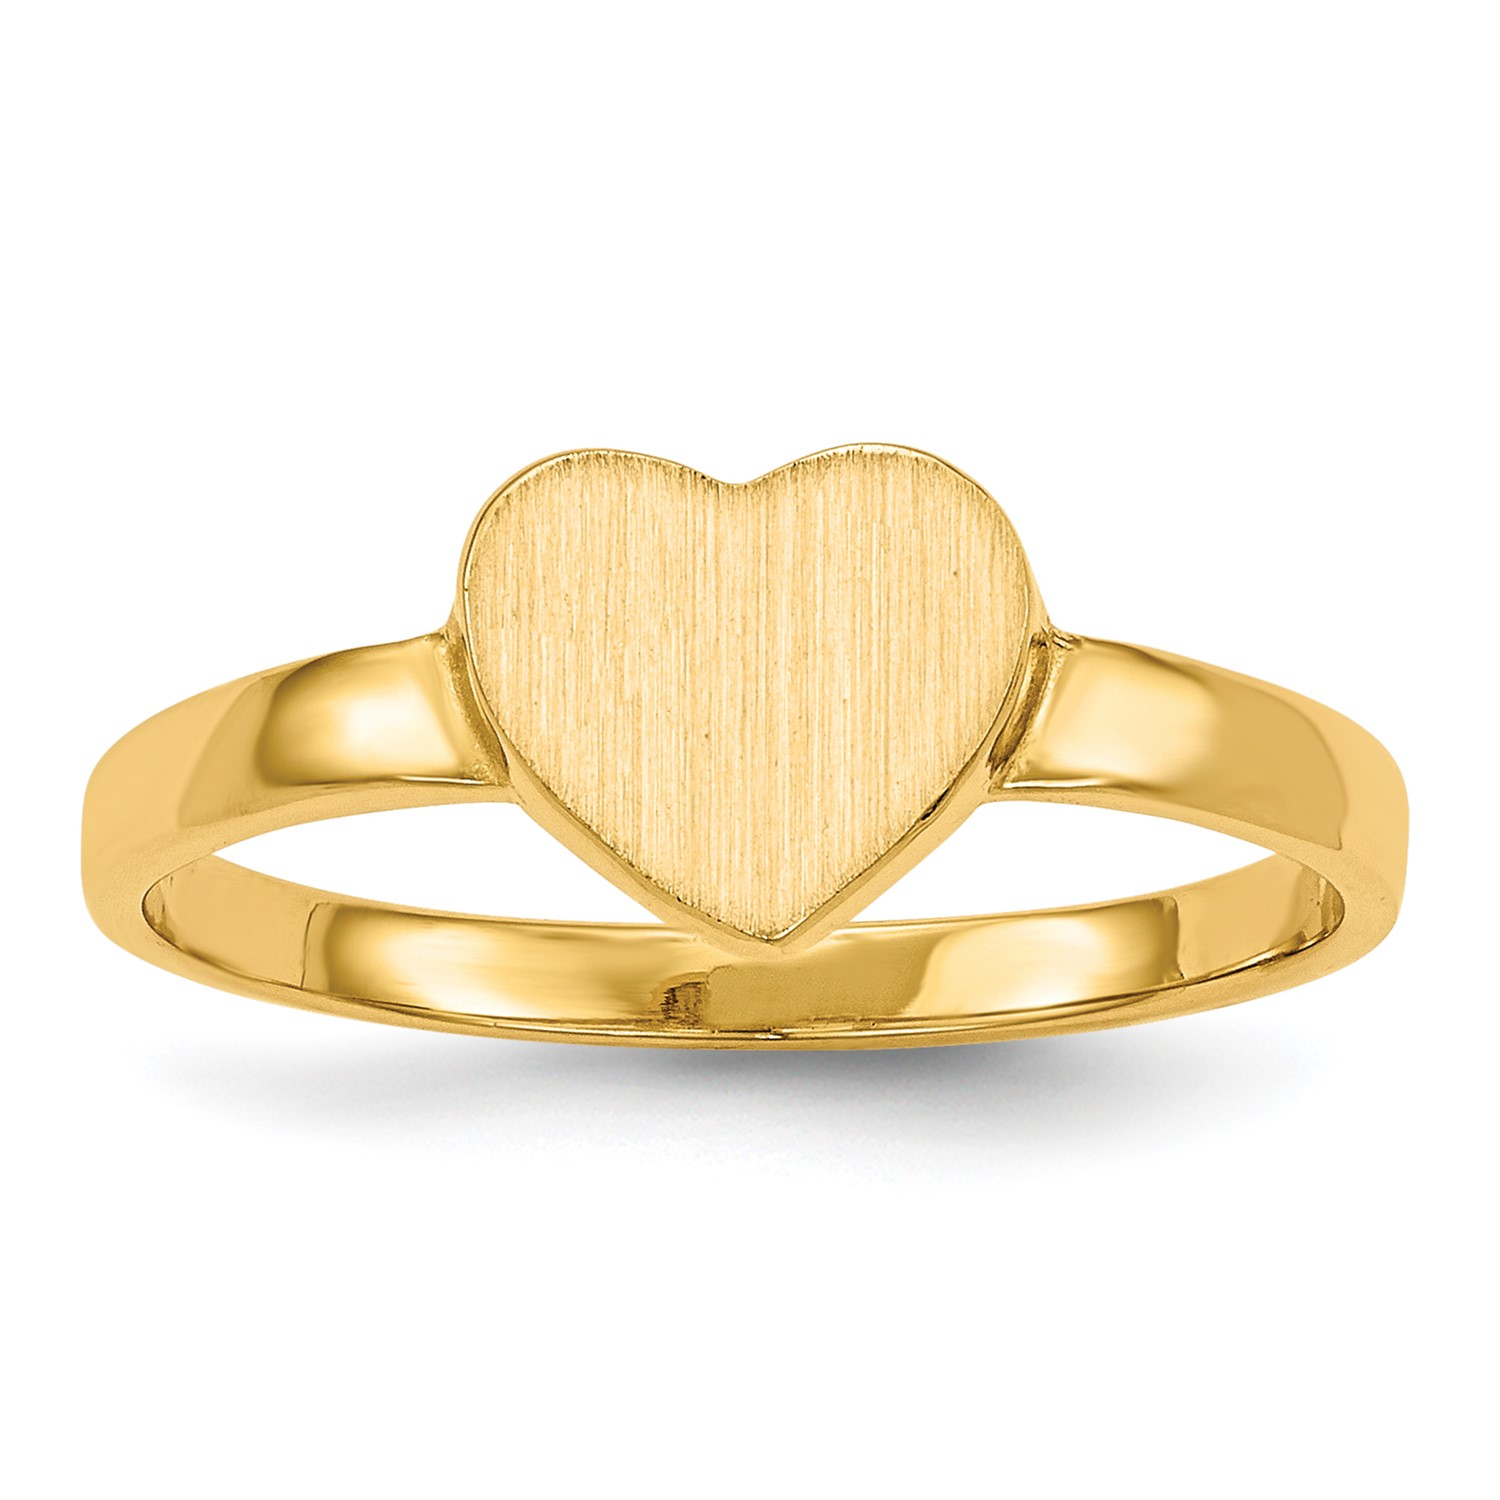 14k Yellow gold Engravable Signet Ring (7mm x 7.6mm face)